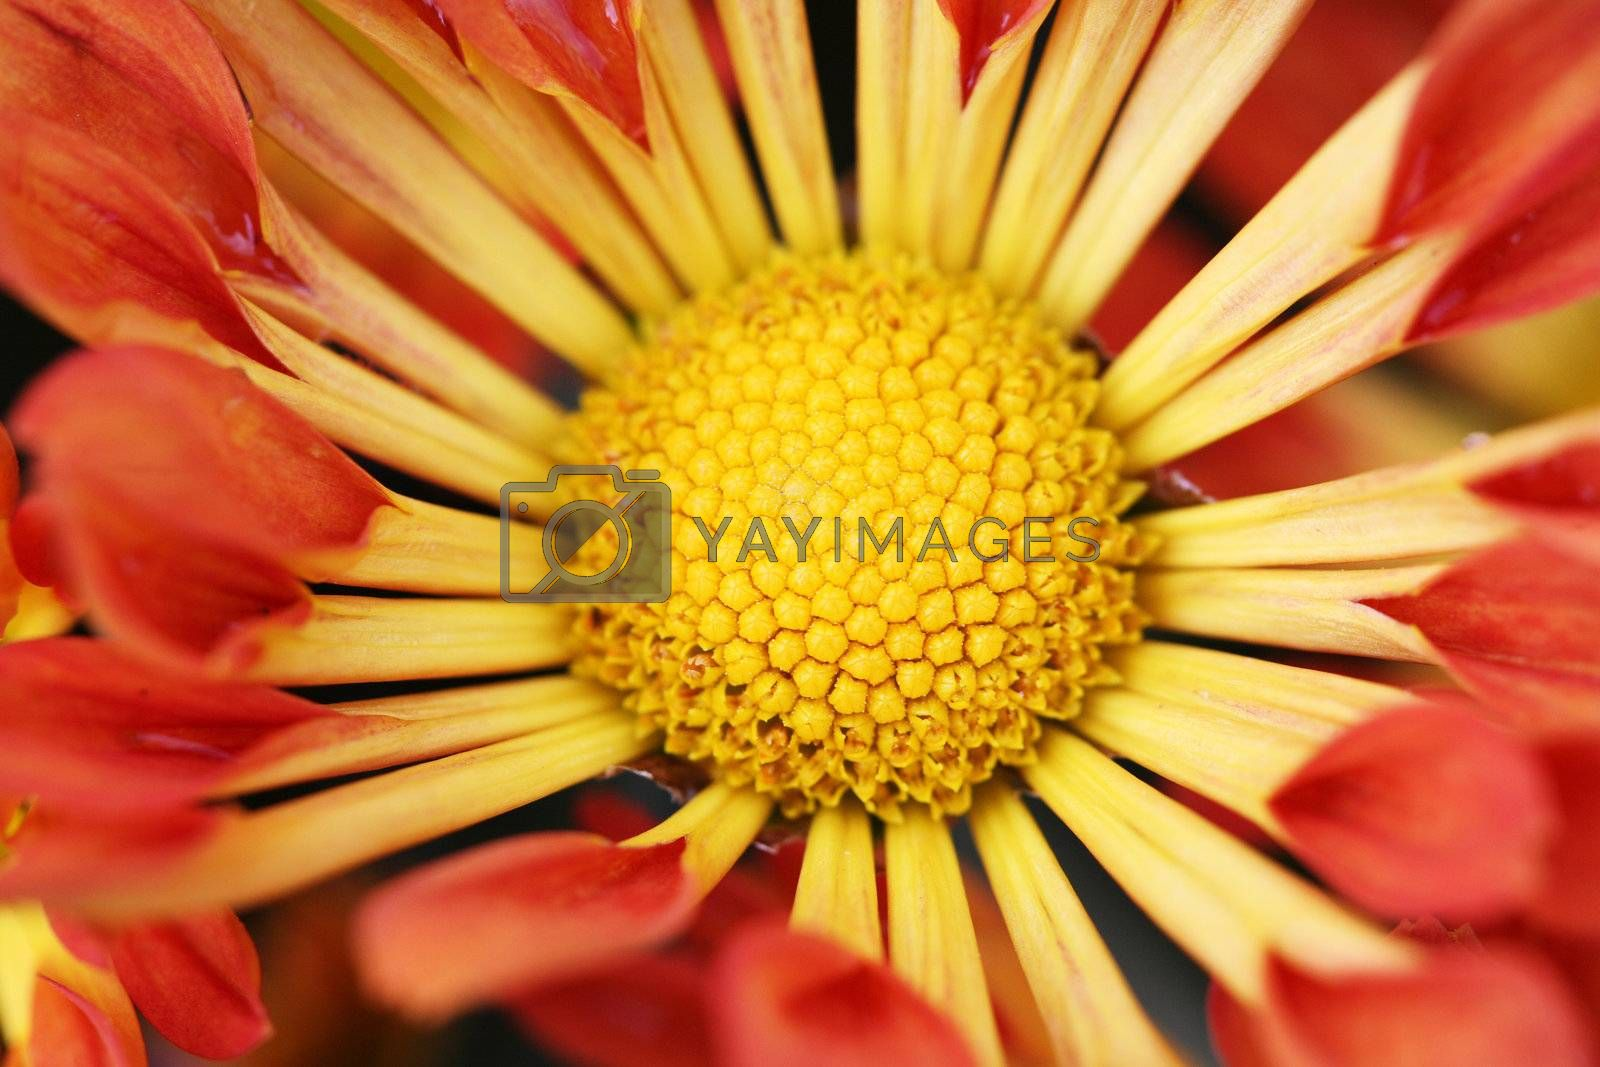 Close up of a sunflower bloom with blurred petals